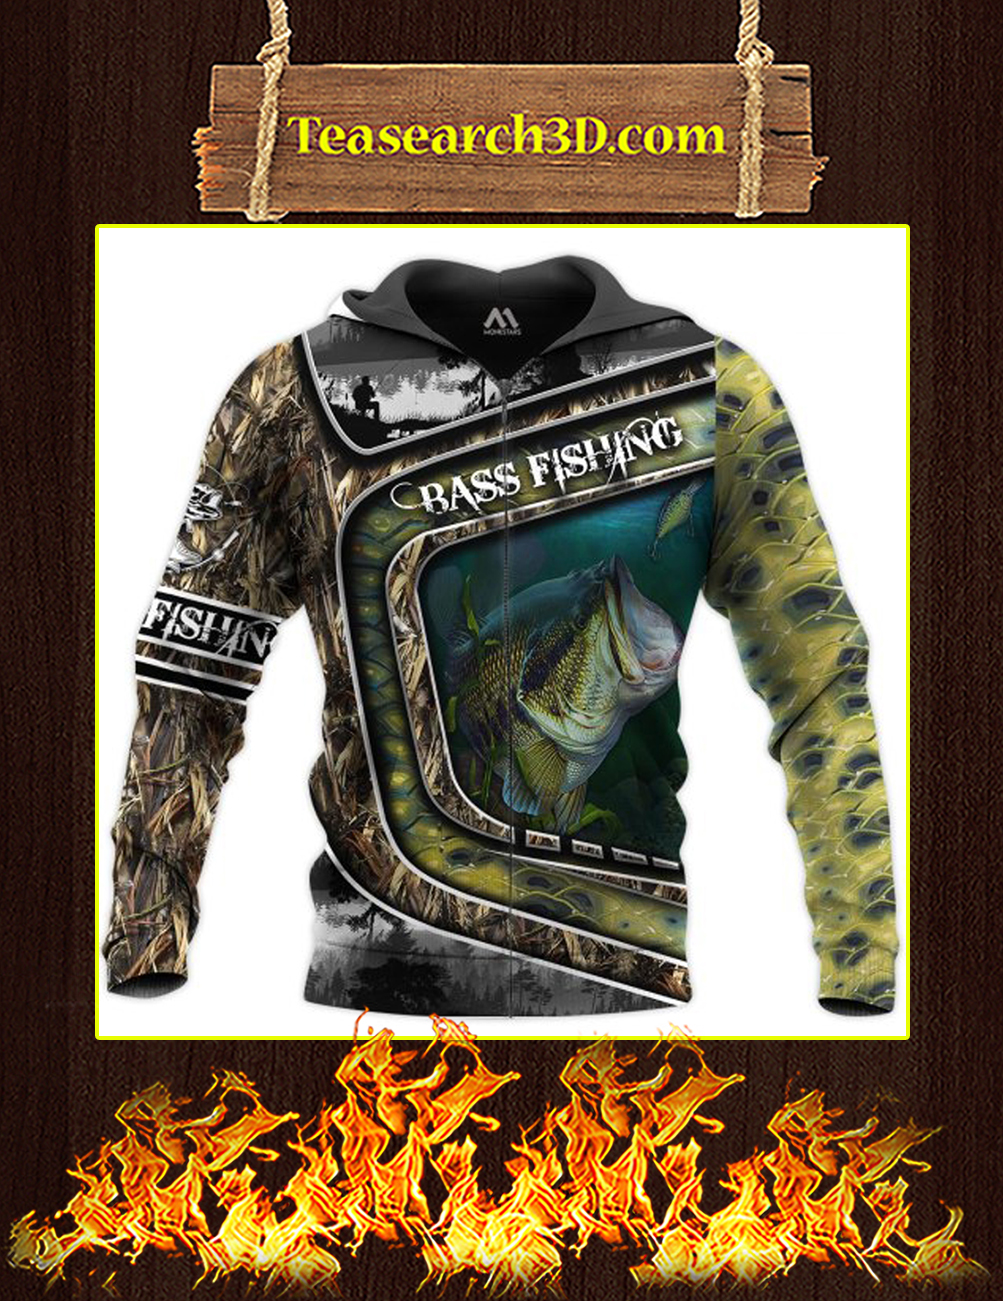 Bass Fishing Camo 3D All Over Printed zip hoodie